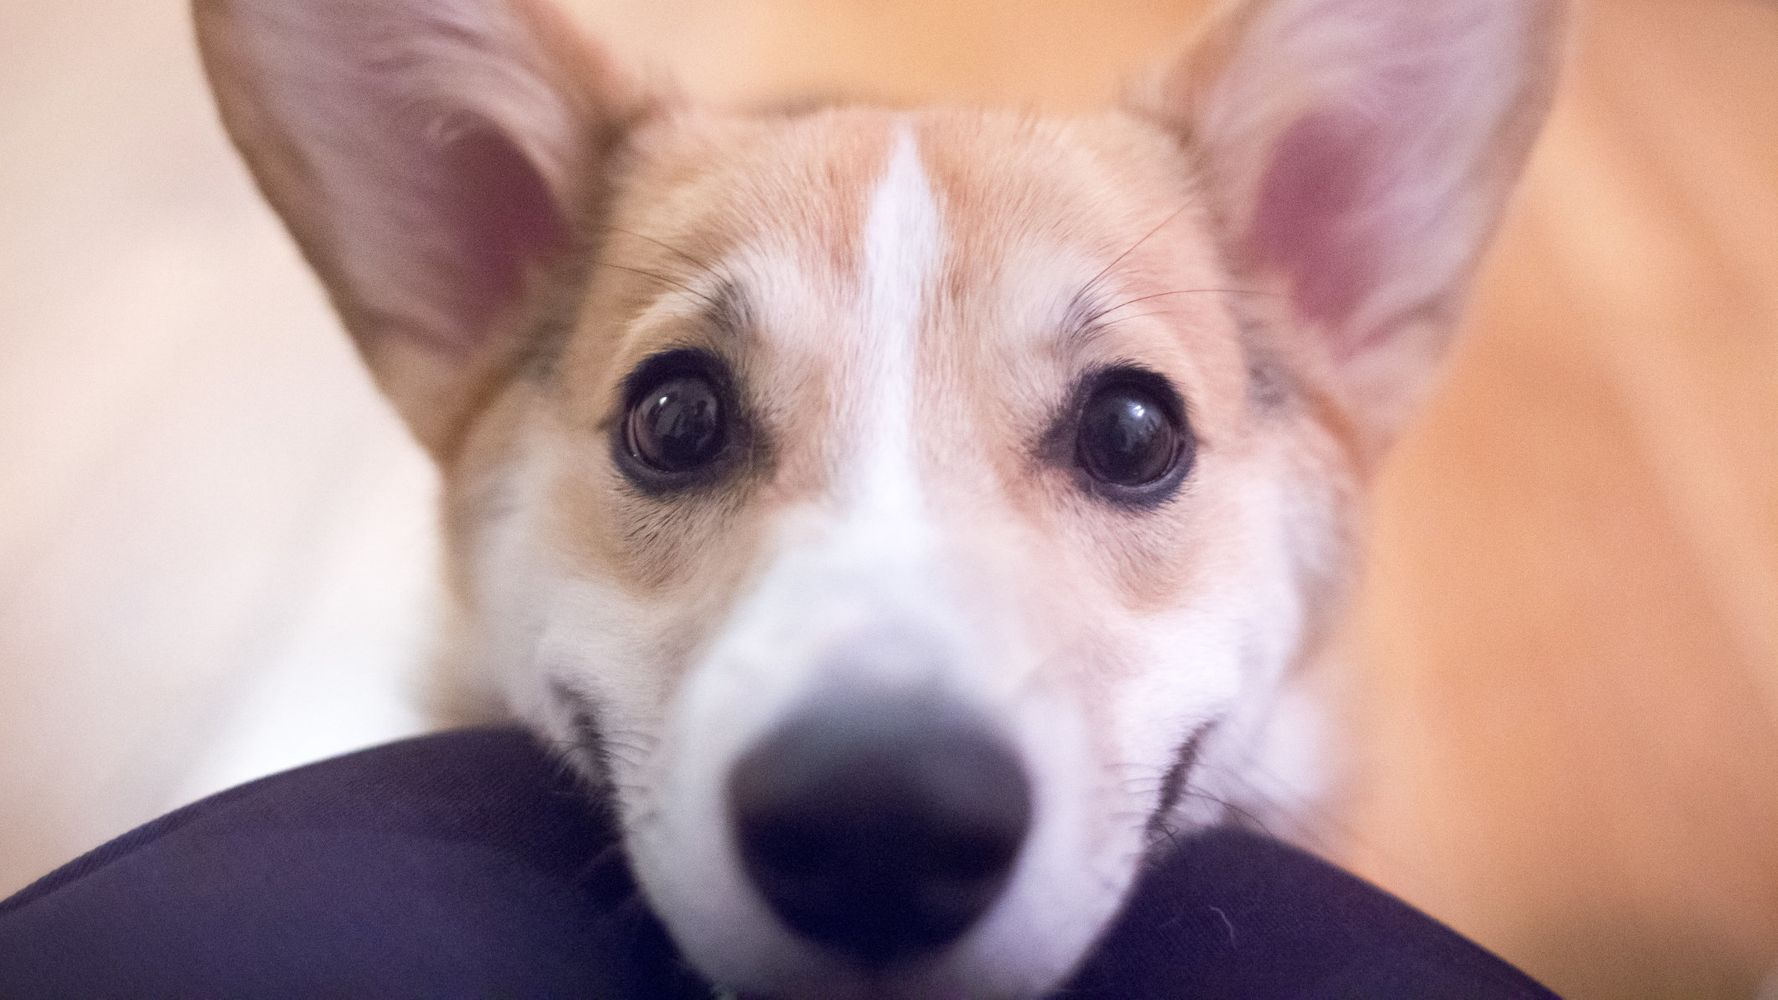 Your Dog Making A 'Sad Puppy Face' May Be Trying To Tell You